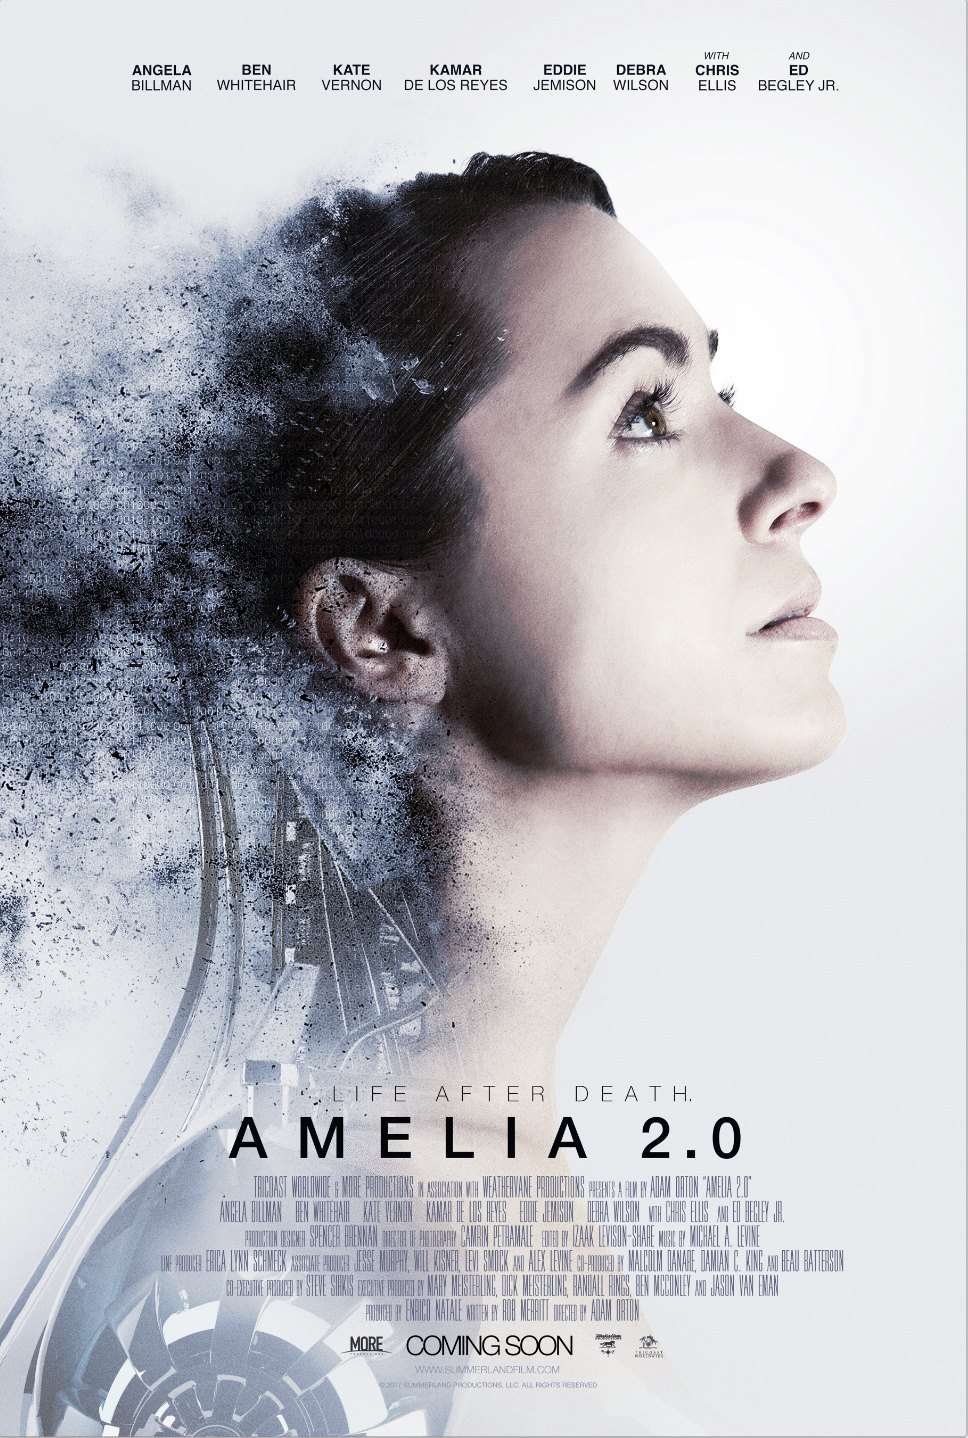 Amelia-2.0-movie-poster.jpg?ssl=1